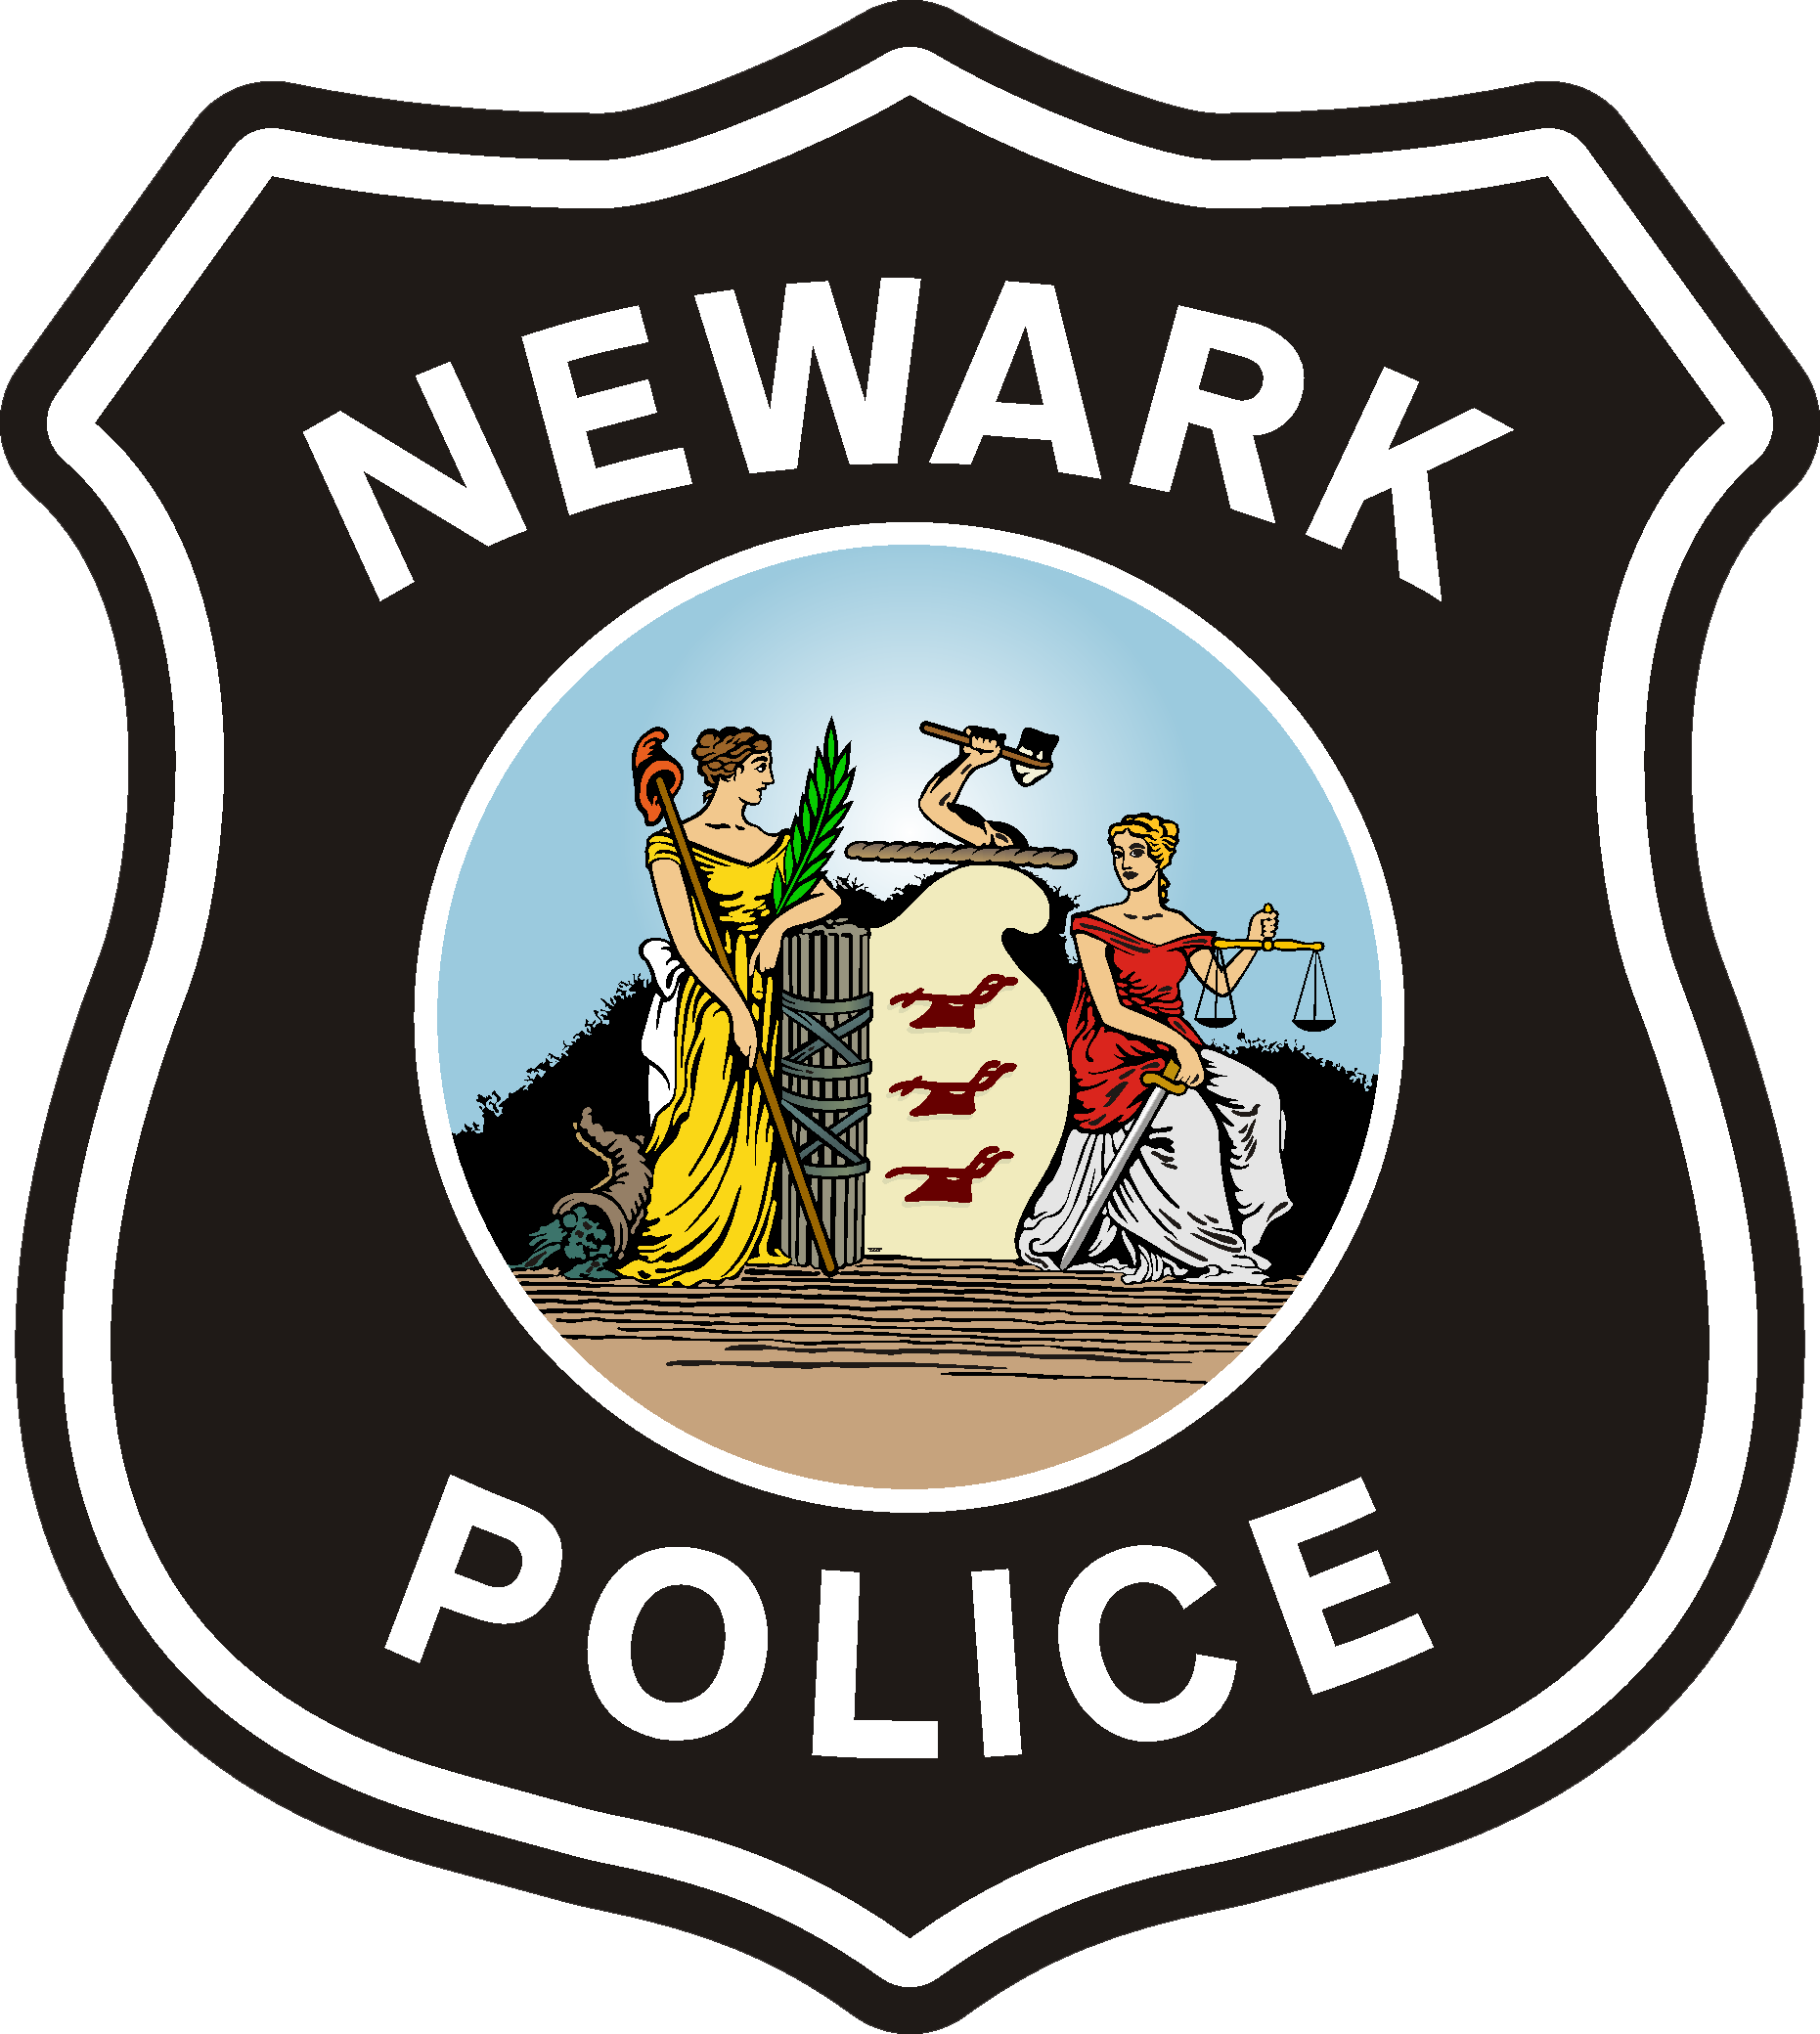 newark police division rh npd newarkpublicsafety org police logos images police logos uk